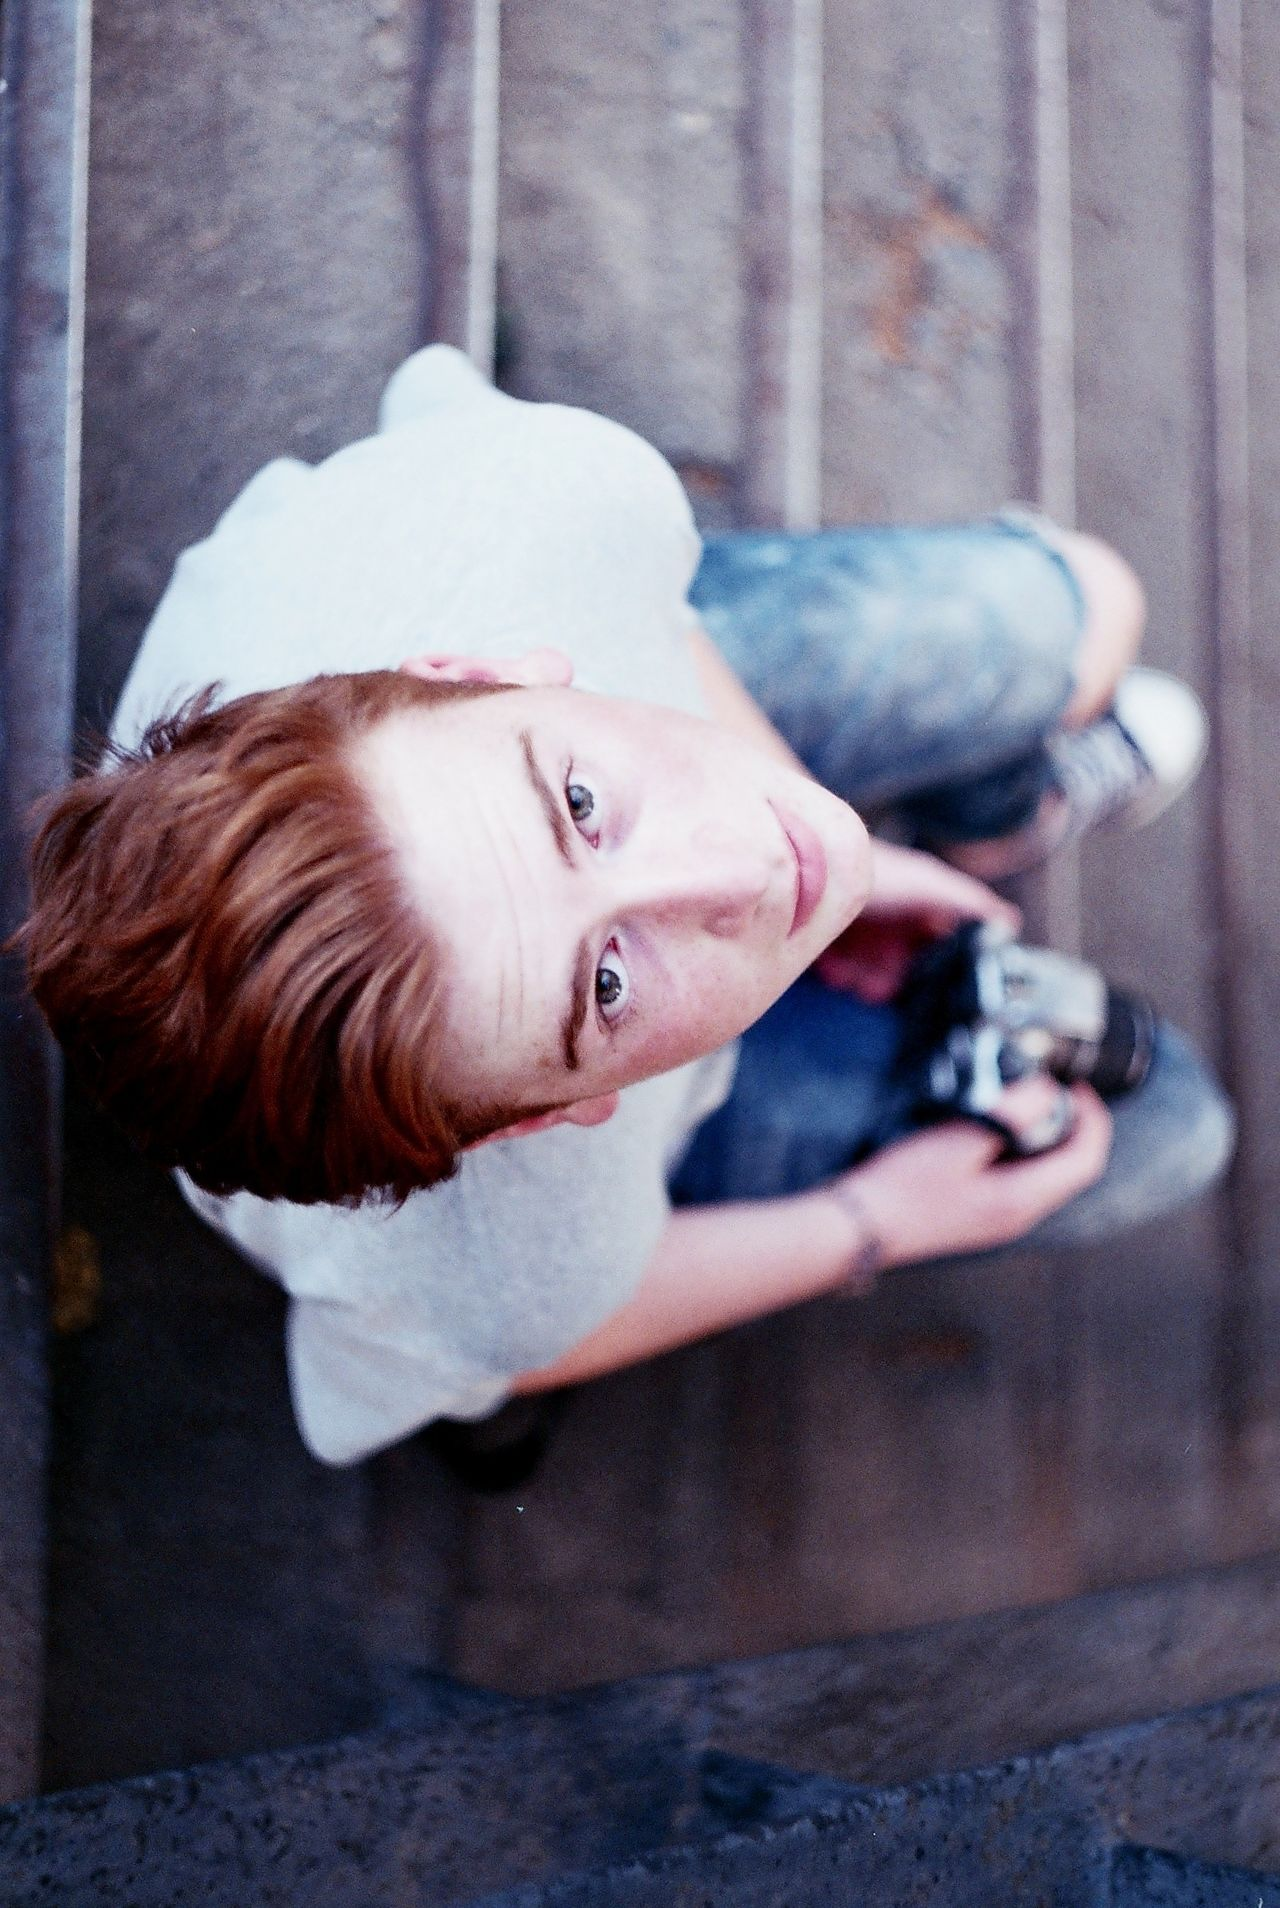 Adult Analog Analogue Photography Boy Close-up Day Film Film Photography Focus On Foreground Headshot Holding Leisure Activity Lifestyles Looking At Camera One Person Outdoors People Portrait Real People Redhead Young Adult